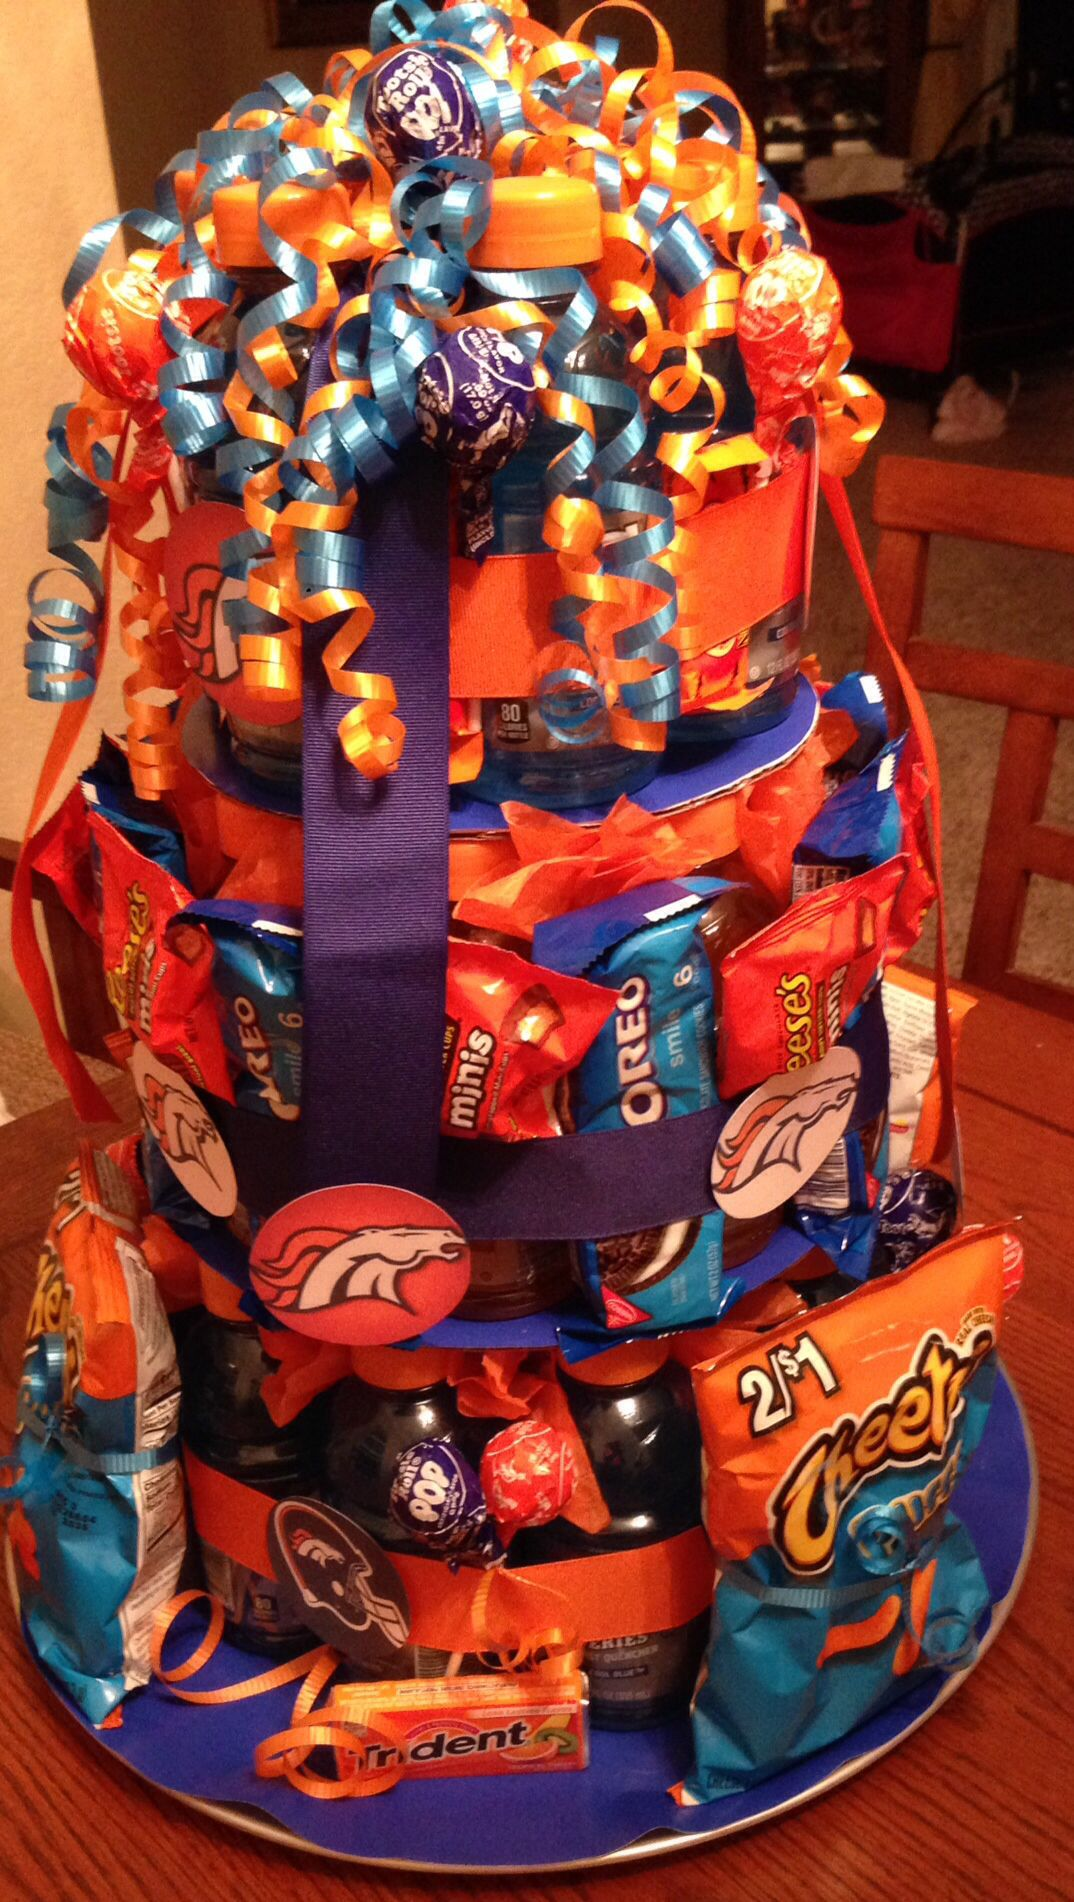 Pin By Kelli Phillips On My Fav Teams Broncos Party Denver Broncos Cake Broncos Gifts